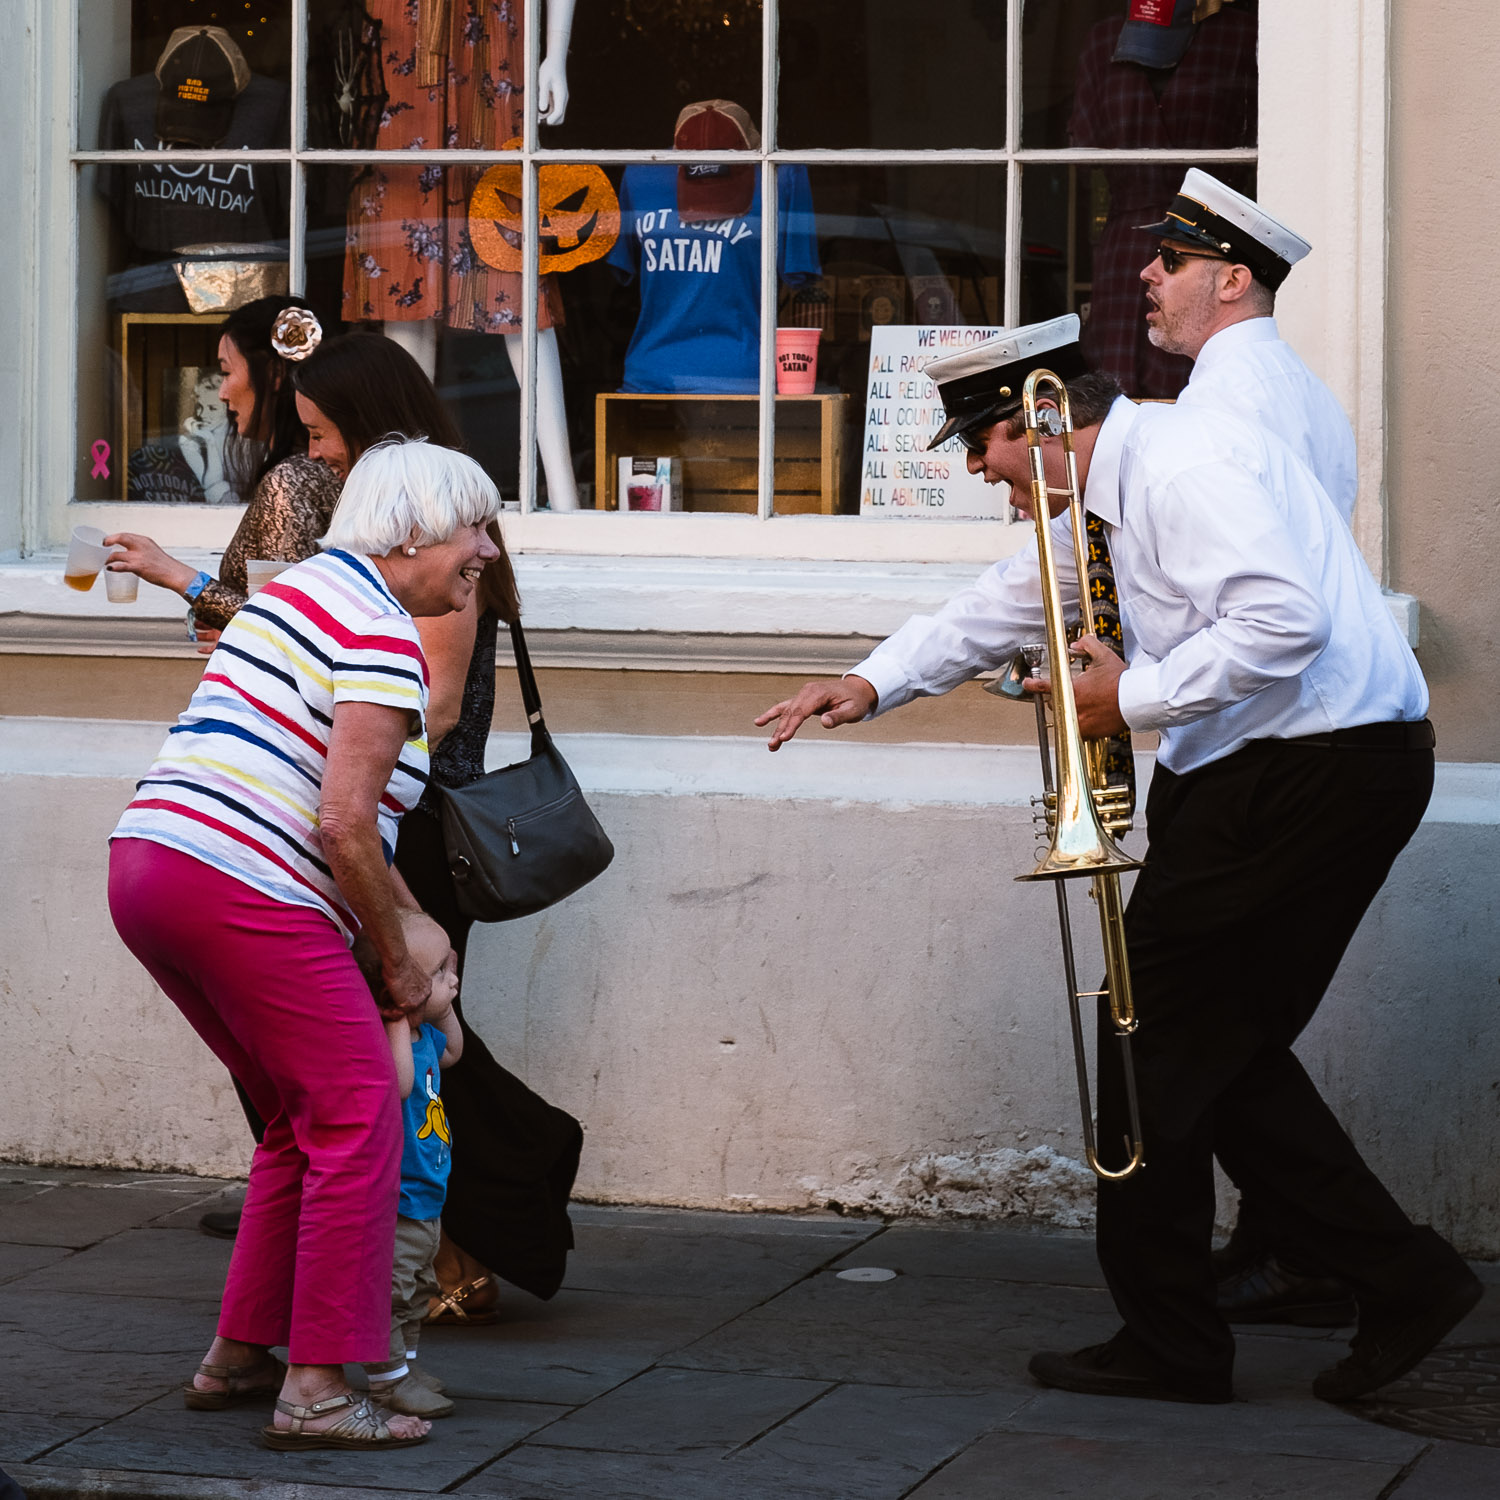 """A second line in New Orleans - Travel photography and guide by © Natasha Lequepeys for """"And Then I Met Yoko"""". #neworleans #nola #photoblog #streetphotography #travelitinerary #fujifilm"""